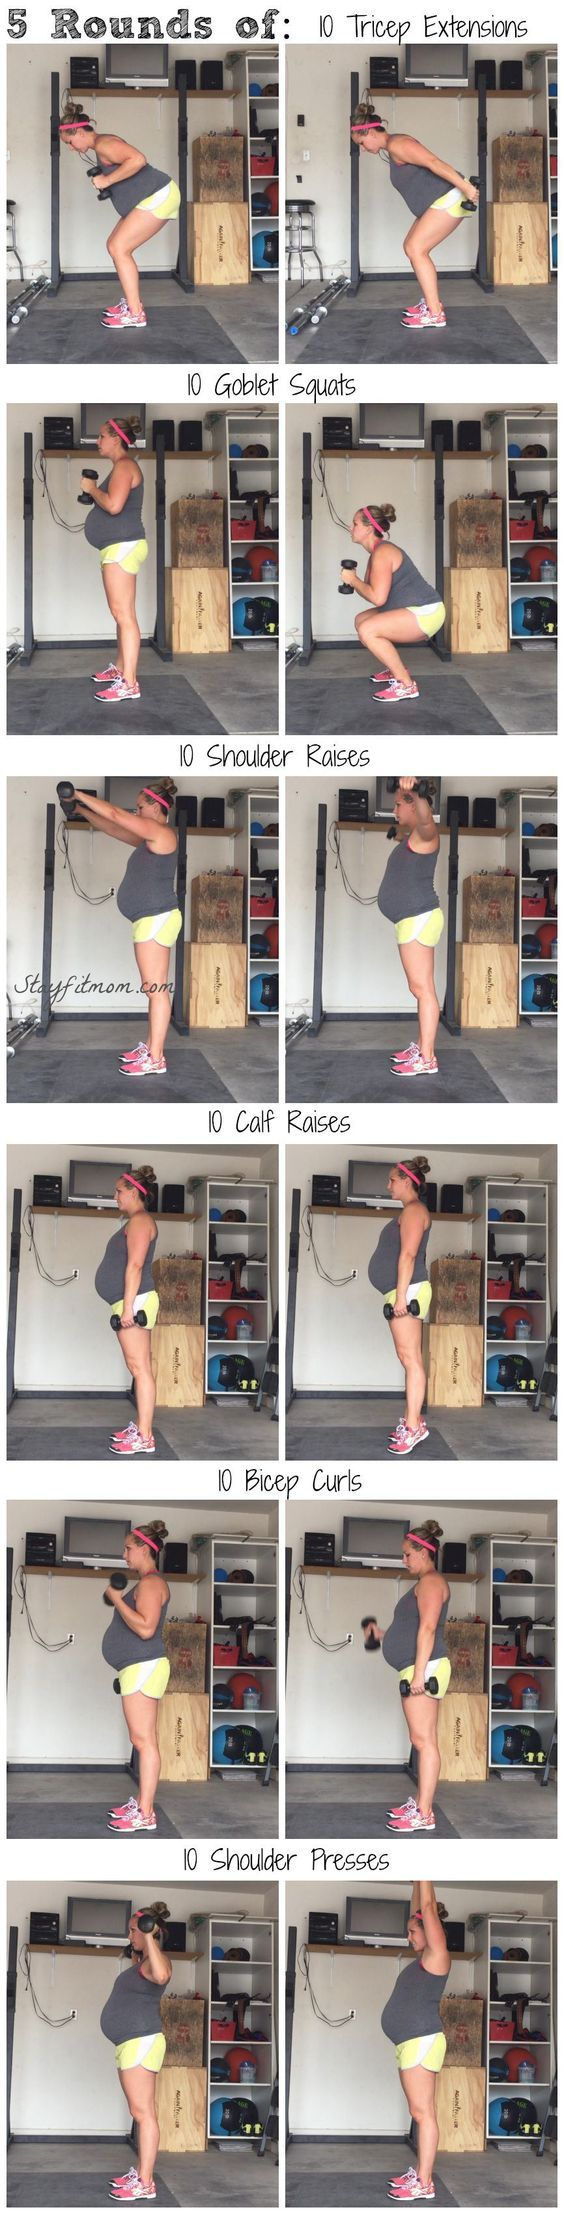 Workout I can easily do at home when I can't make it to the gym: